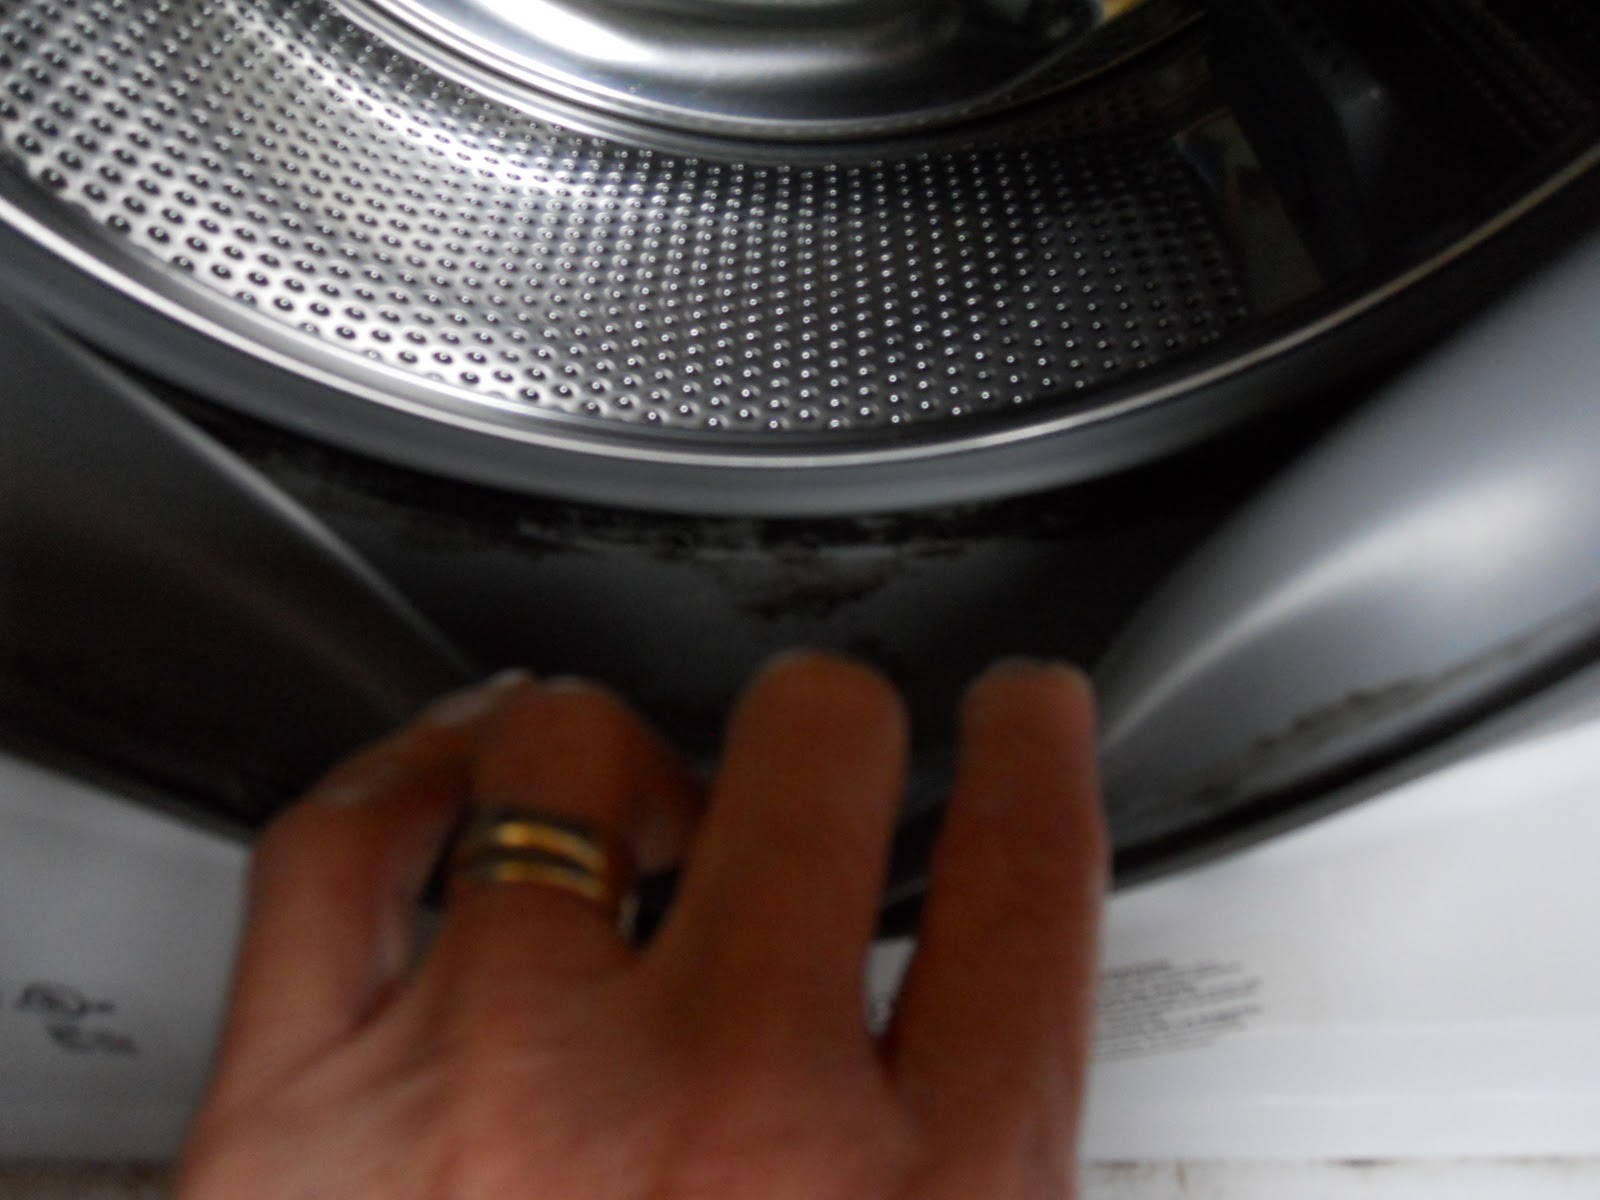 Judy's Op Ed Page: Does your front loading washer stink? #693A29